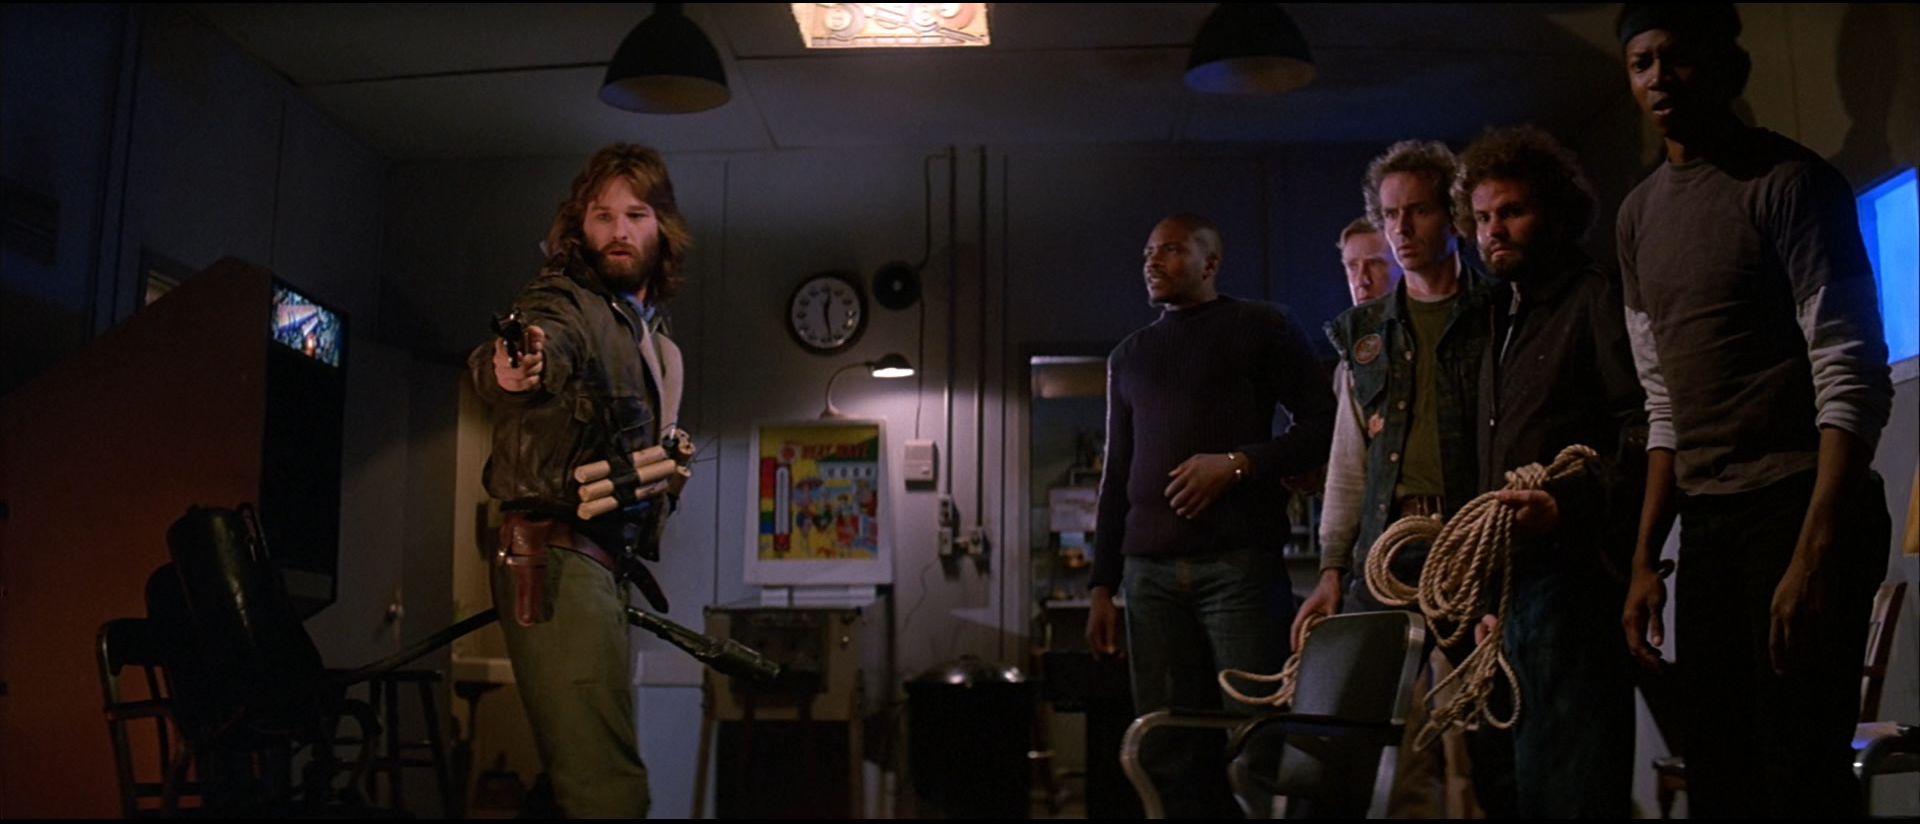 'The Thing': From Box Office Failure to Cult Classic